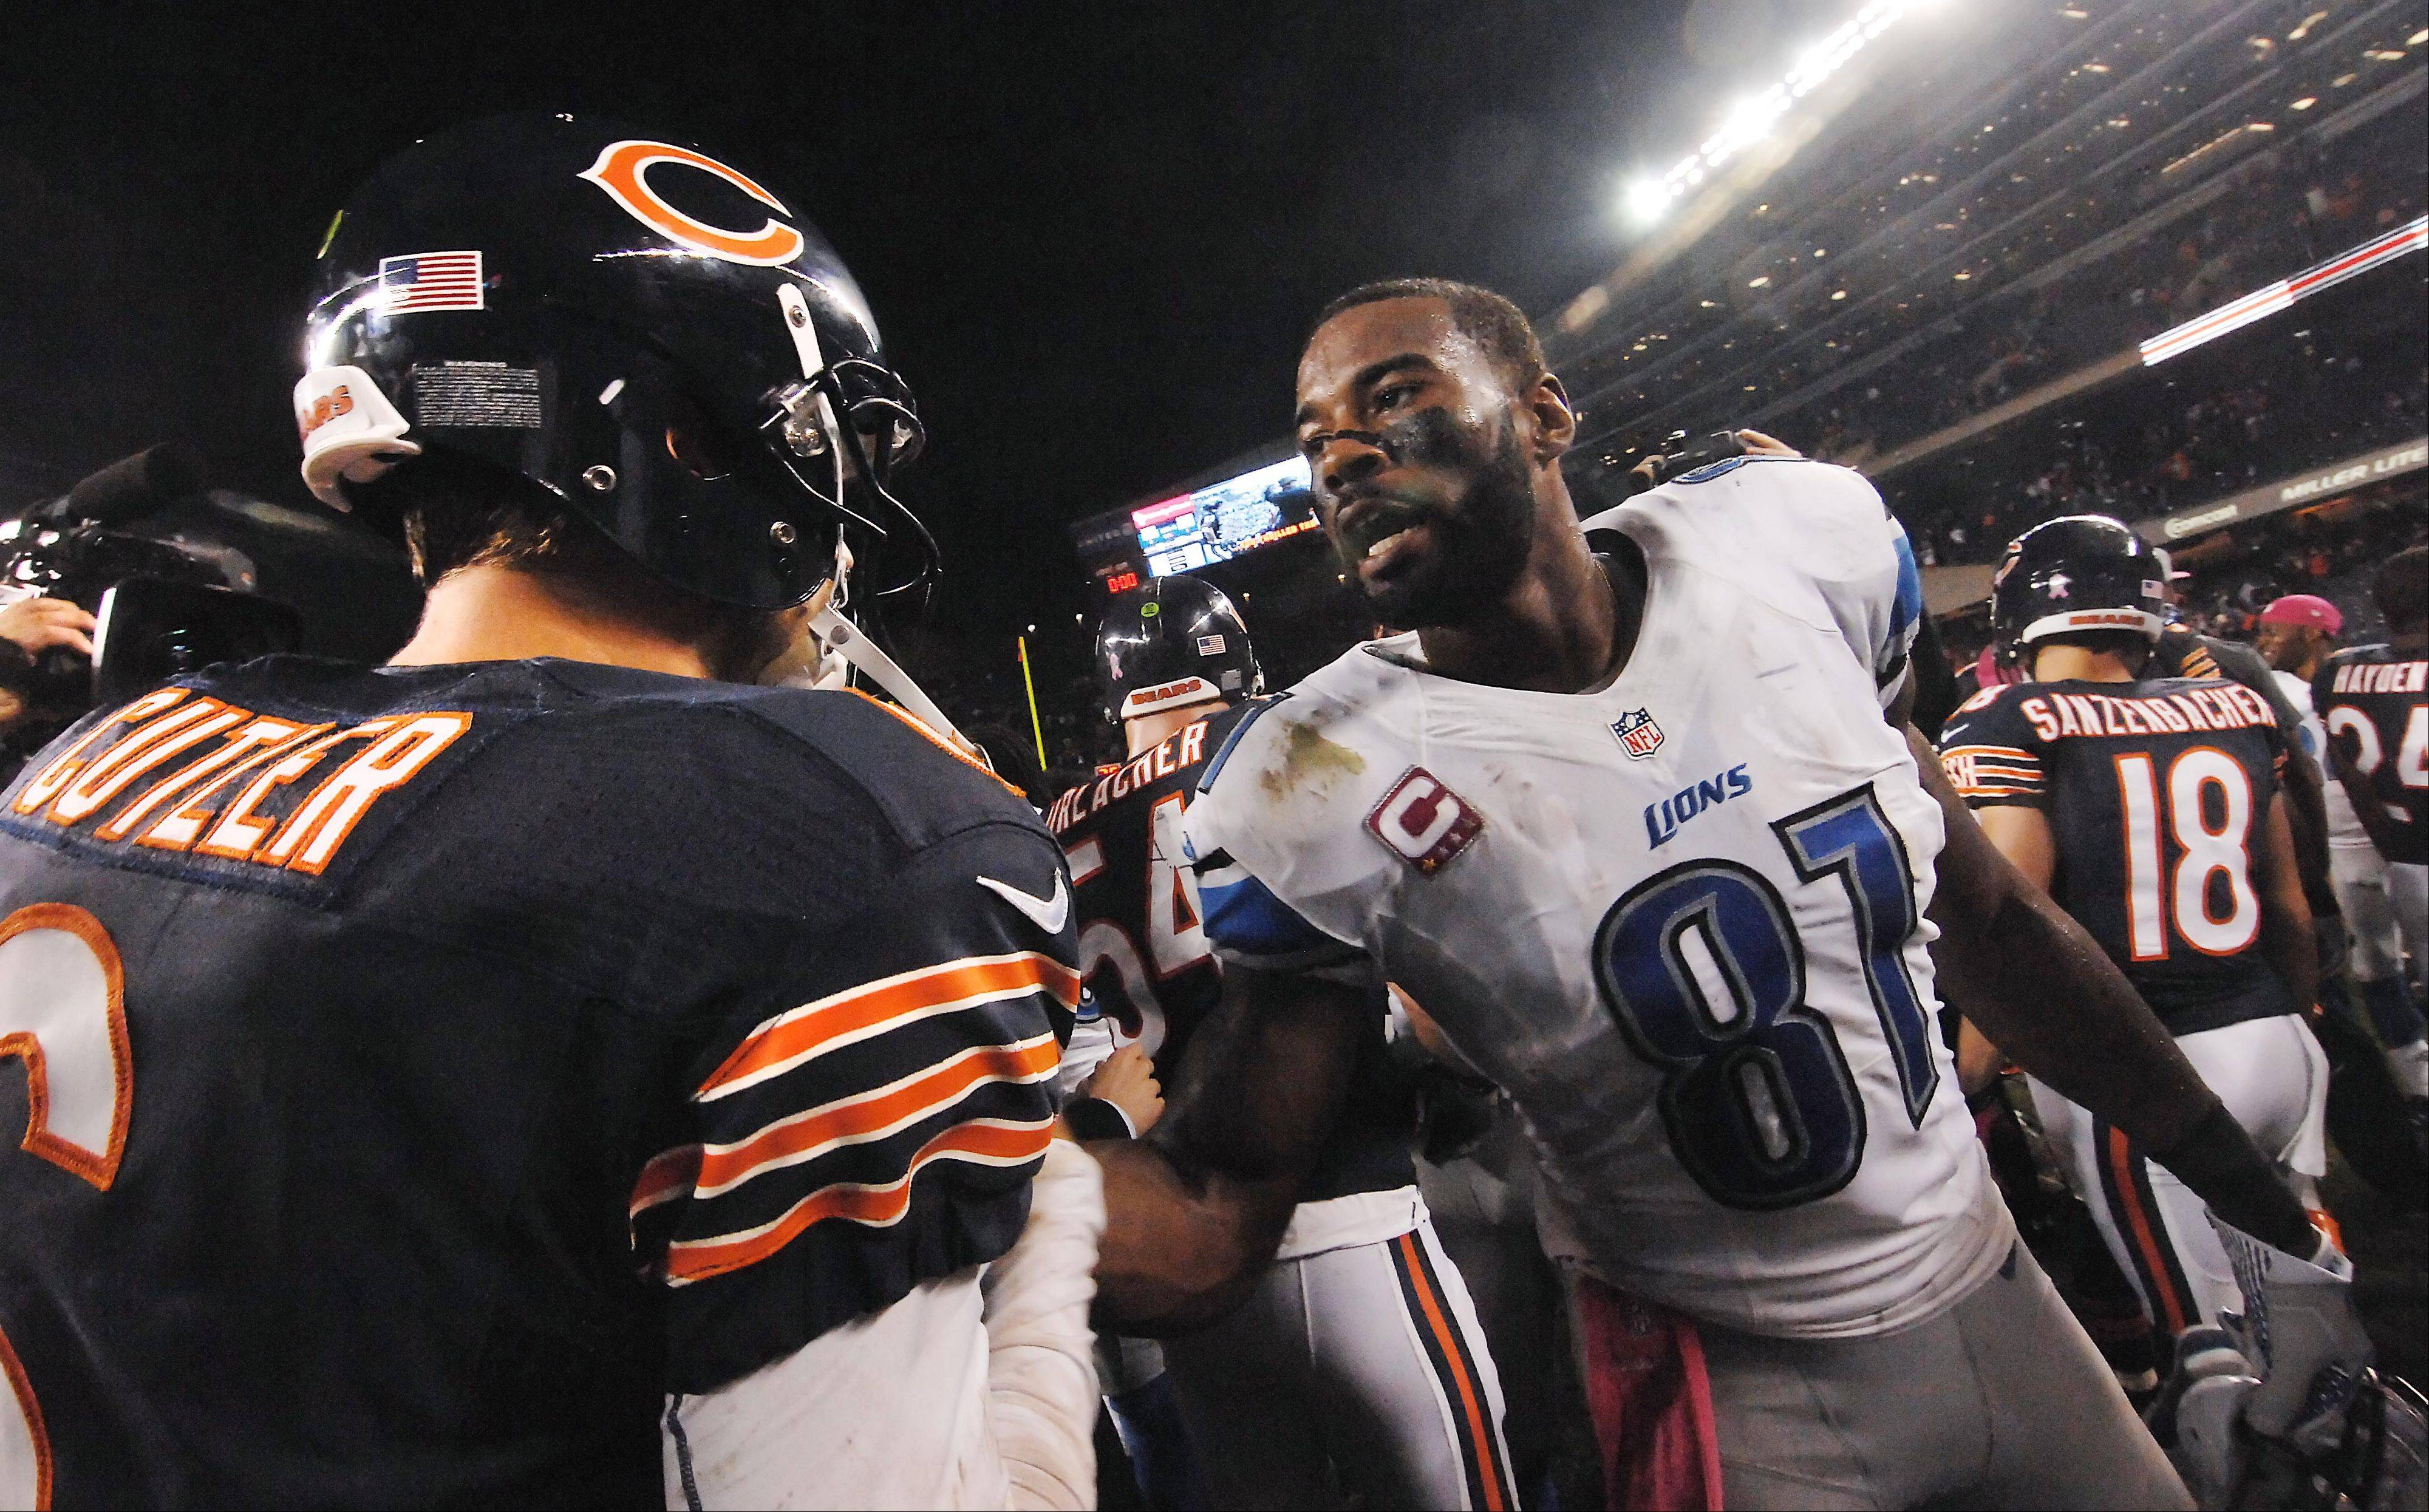 Detroit Lions wide receiver Calvin Johnson speaks with Chicago Bears quarterback Jay Cutler after the game.